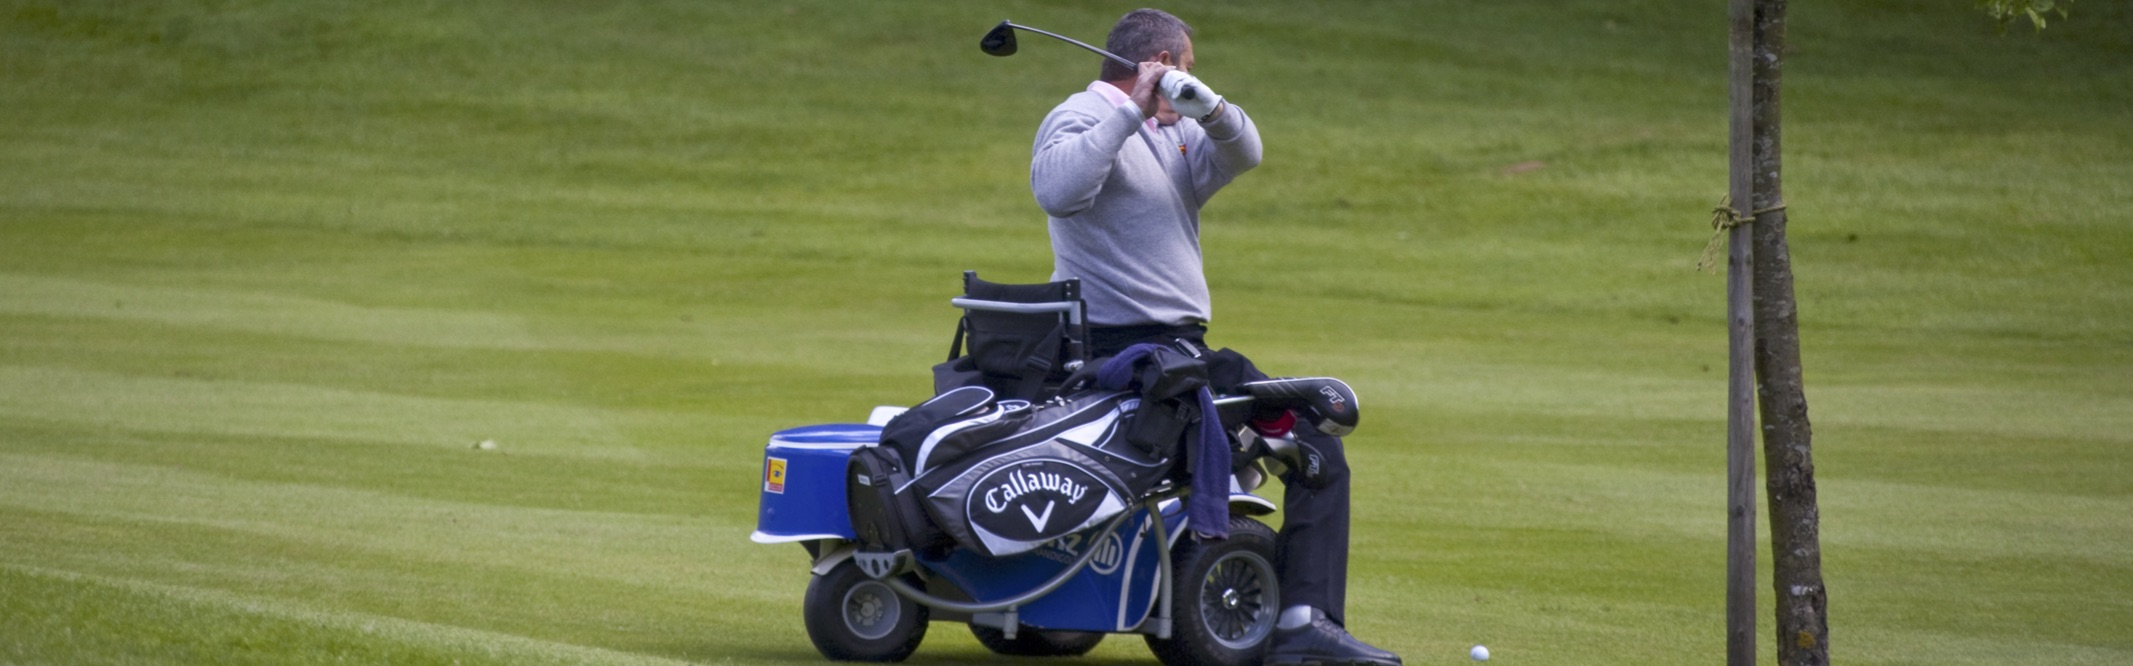 Man in power chair playing golf